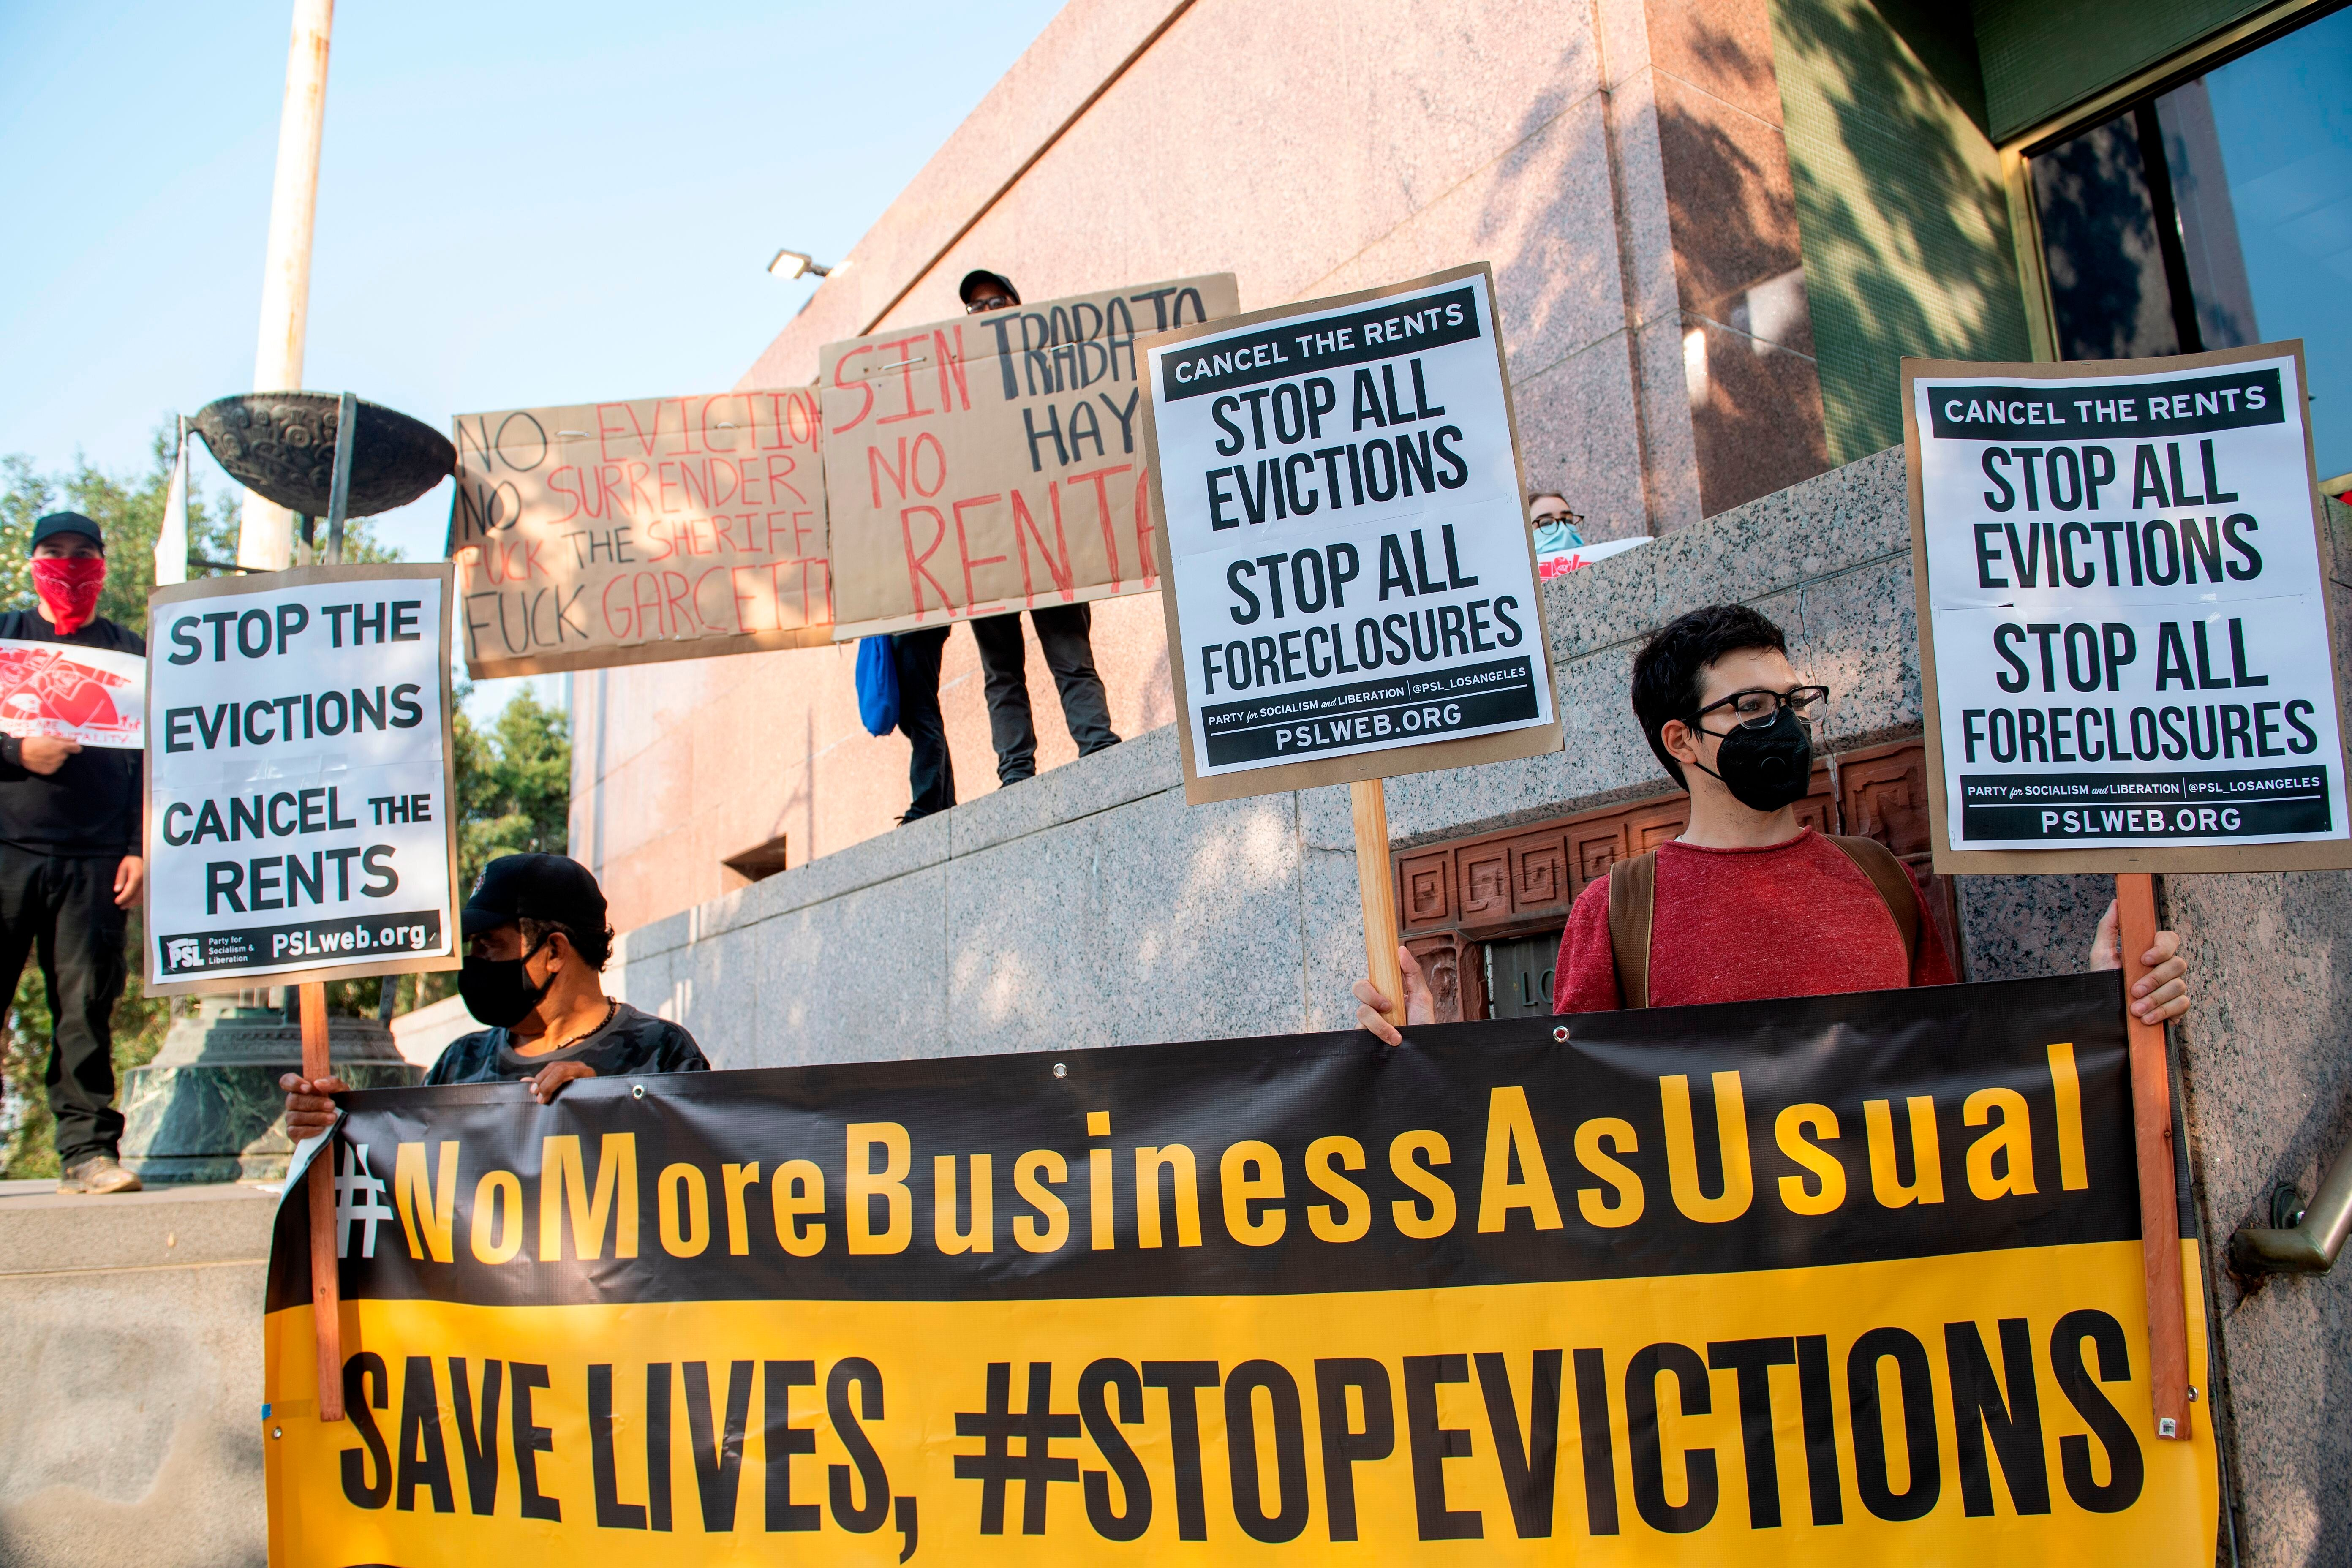 Renters and housing advocates protest to cancel rent and stop evictions amid the coronavirus pandemic on Aug. 21, 2020, in Lo